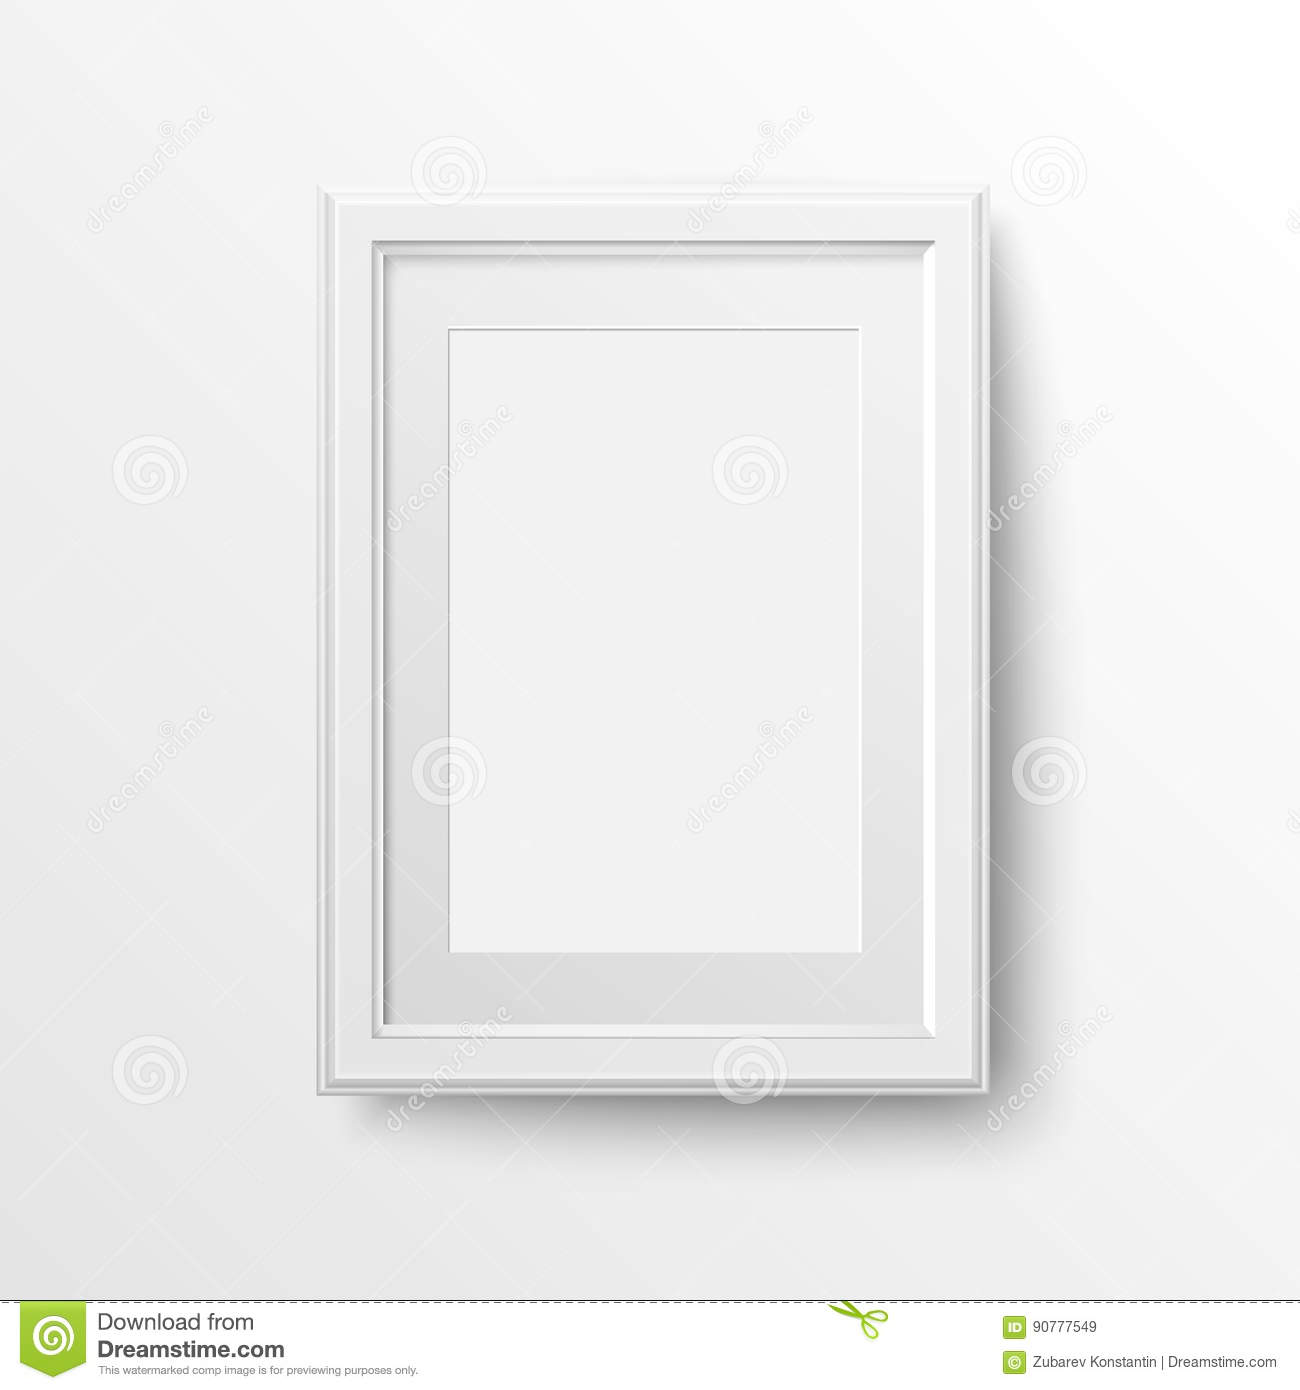 White frame for photos. stock vector. Illustration of layout - 90777549